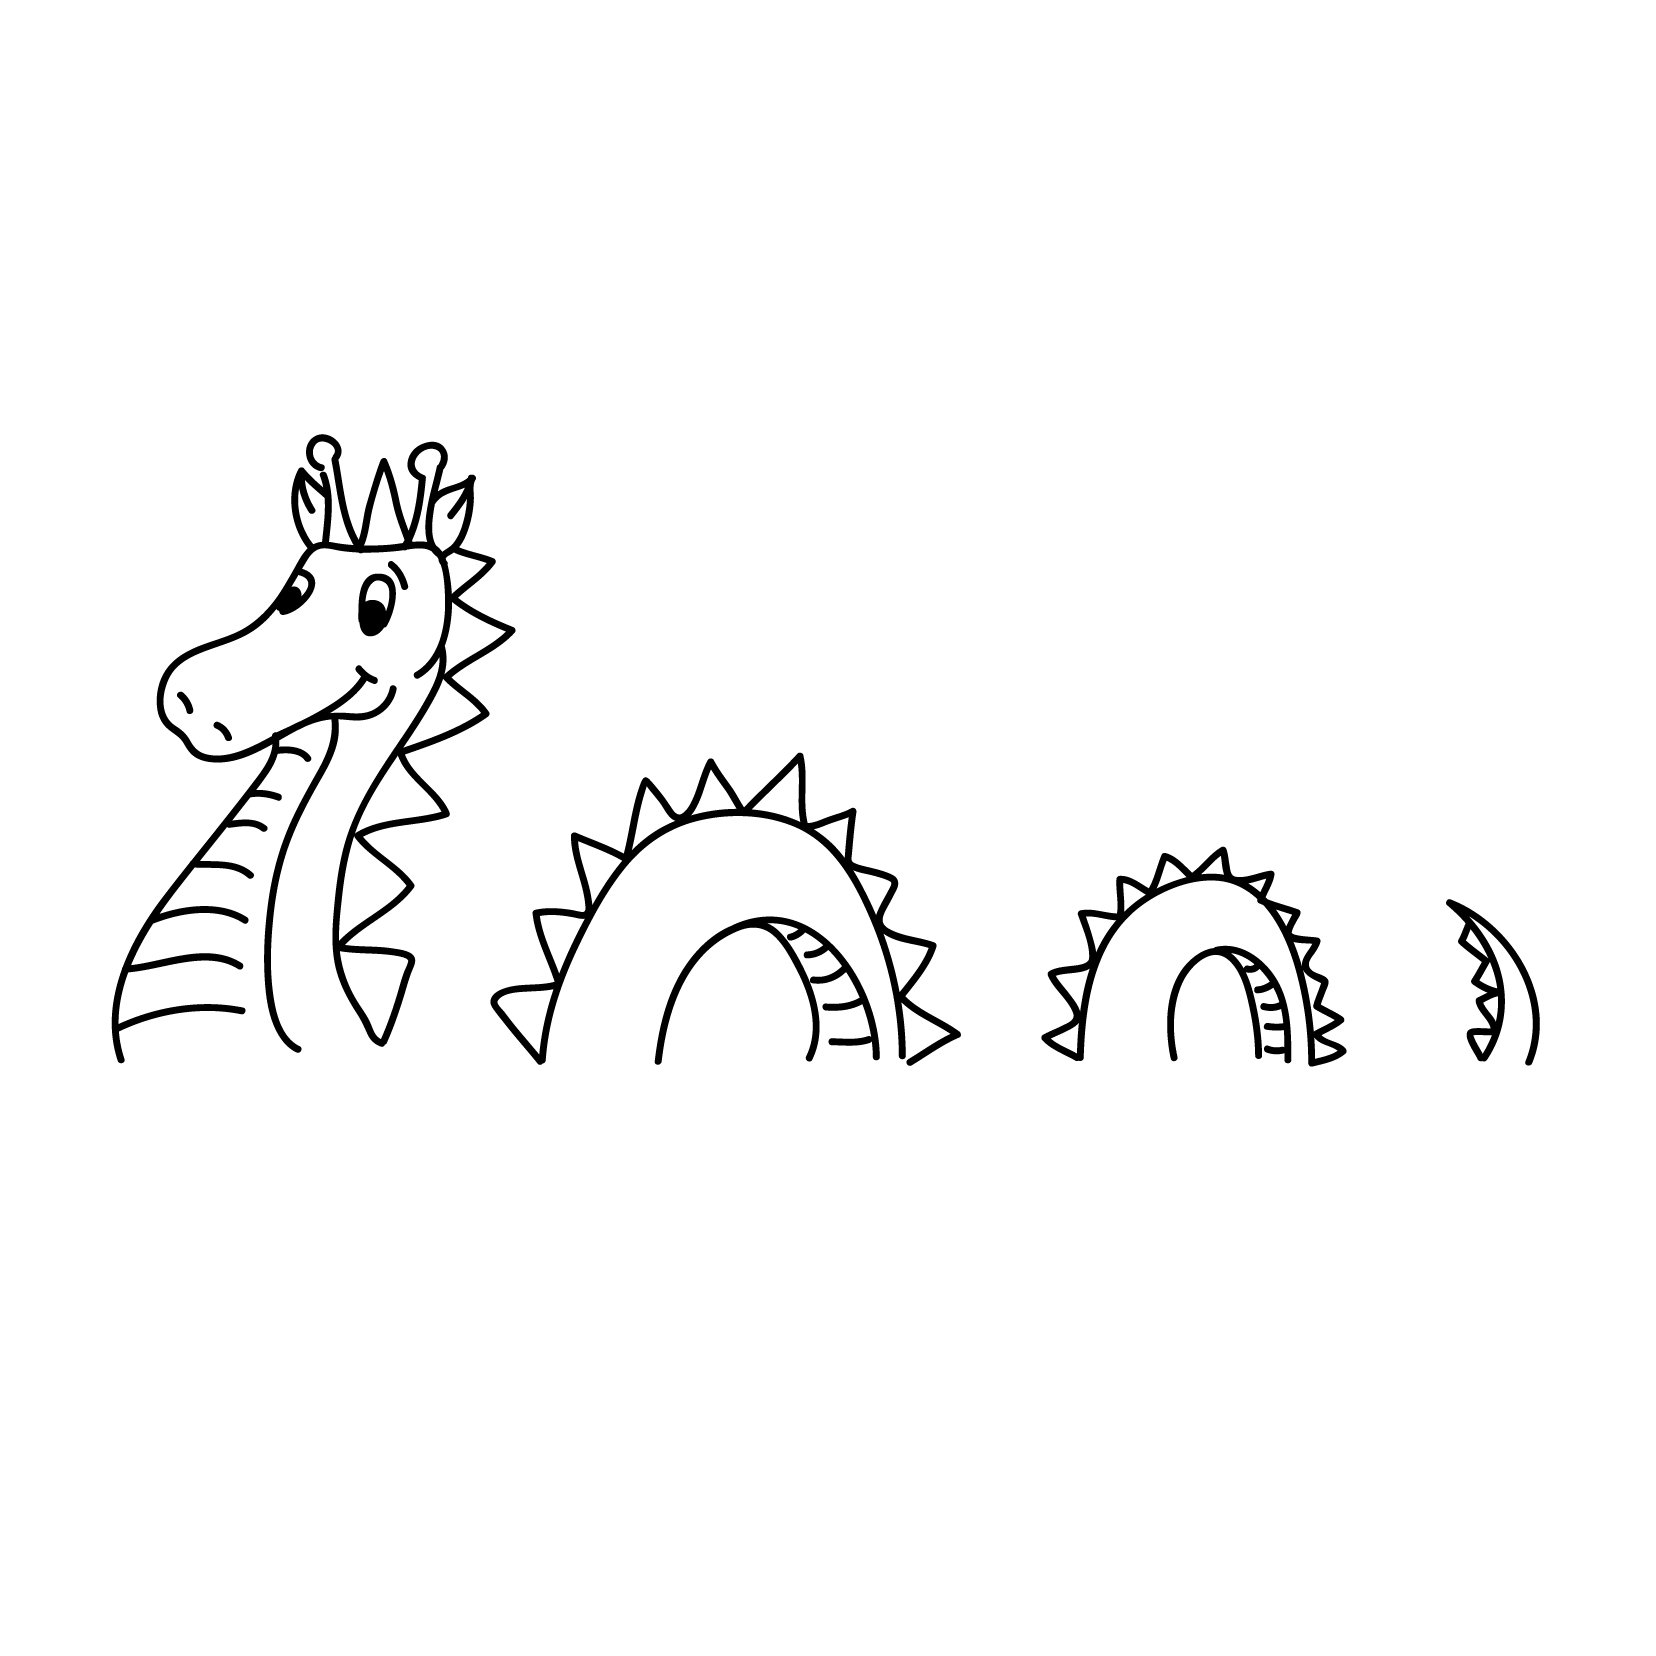 Loch Ness Cartoon Monster - Vinyl Wall Art Decal for Homes, Offices, Kids Rooms, Nurseries, Schools, High Schools, Colleges, Universities, Interior Designers, Architects, Remodelers